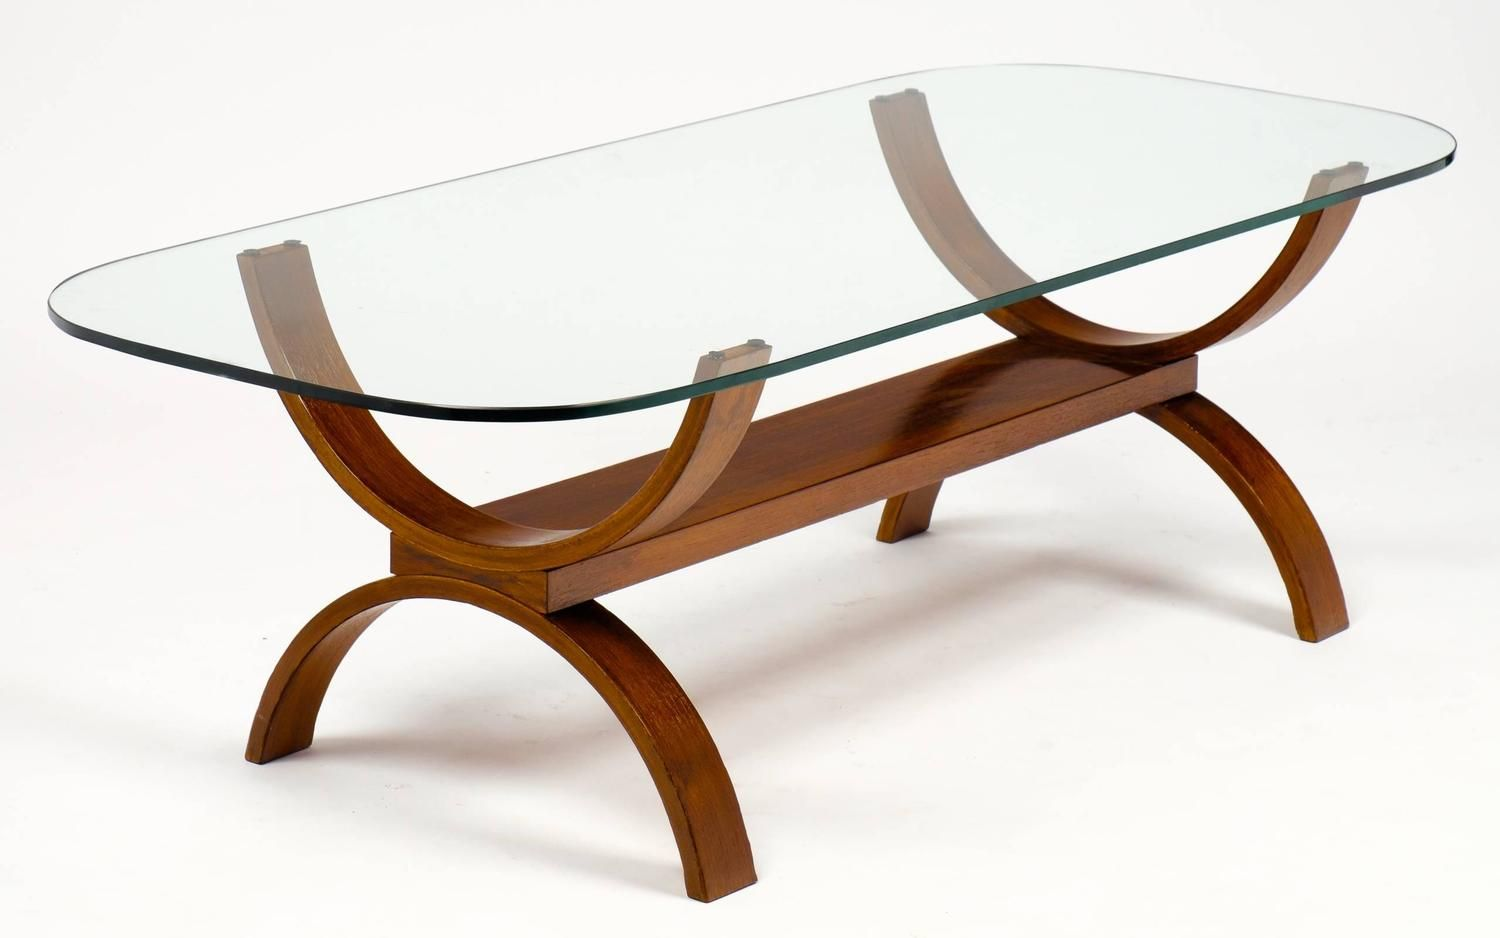 Midcentury Rosewood Coffee Table Coffee Table Table Industrial Design Furniture [ 938 x 1500 Pixel ]